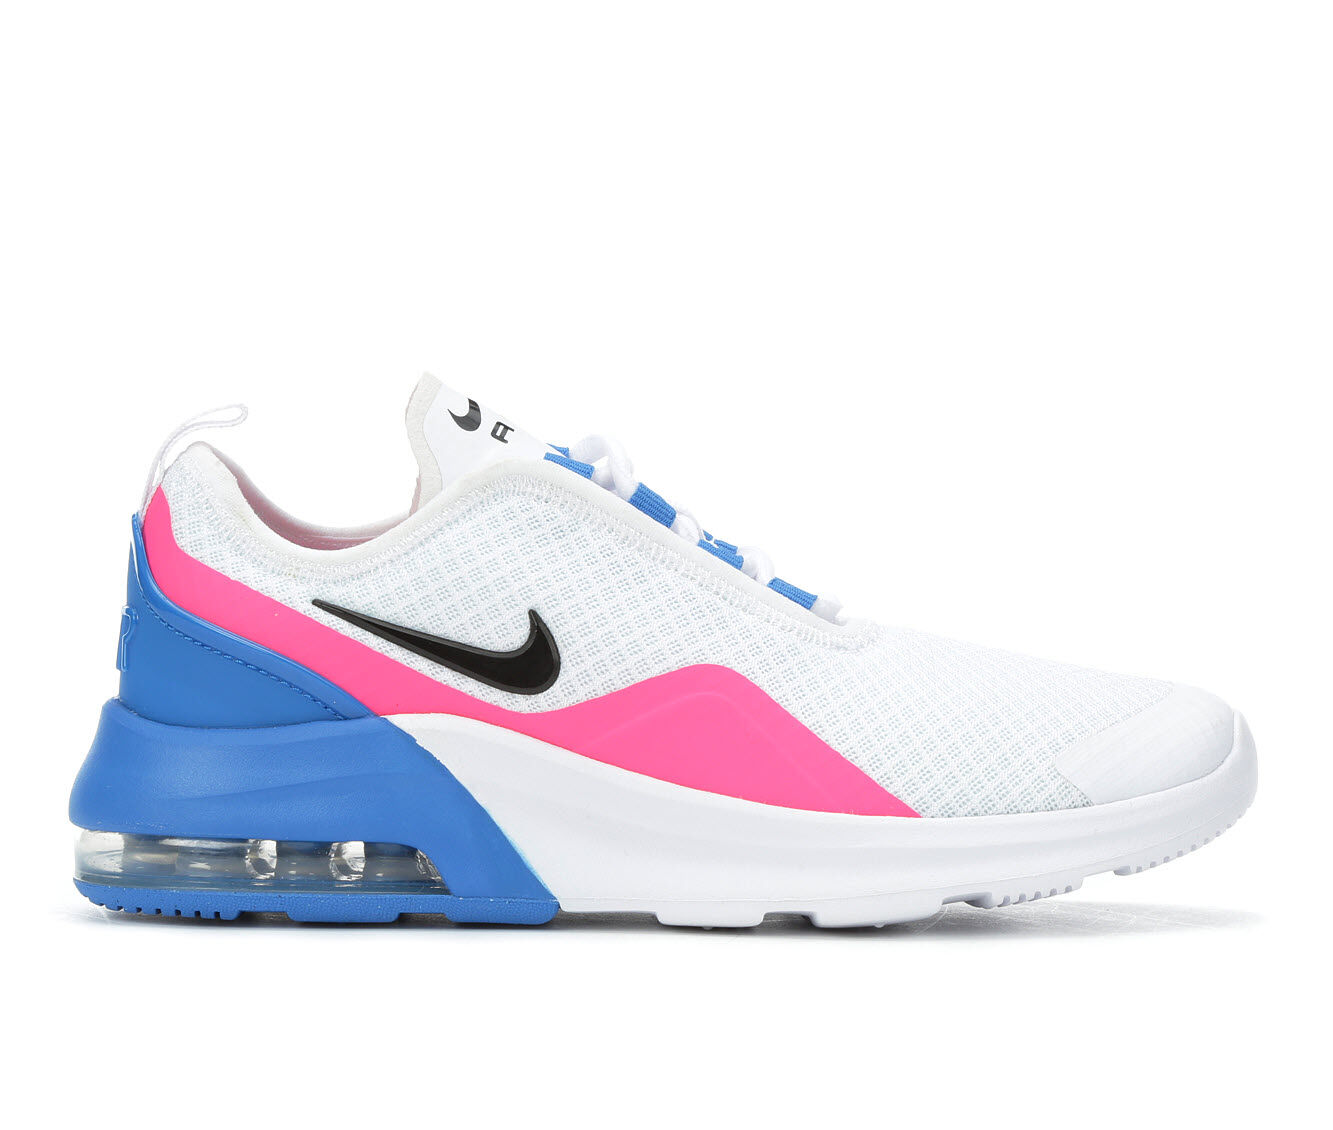 Best Running Shoes Wide Feet Air Max White Blue Kids Nike